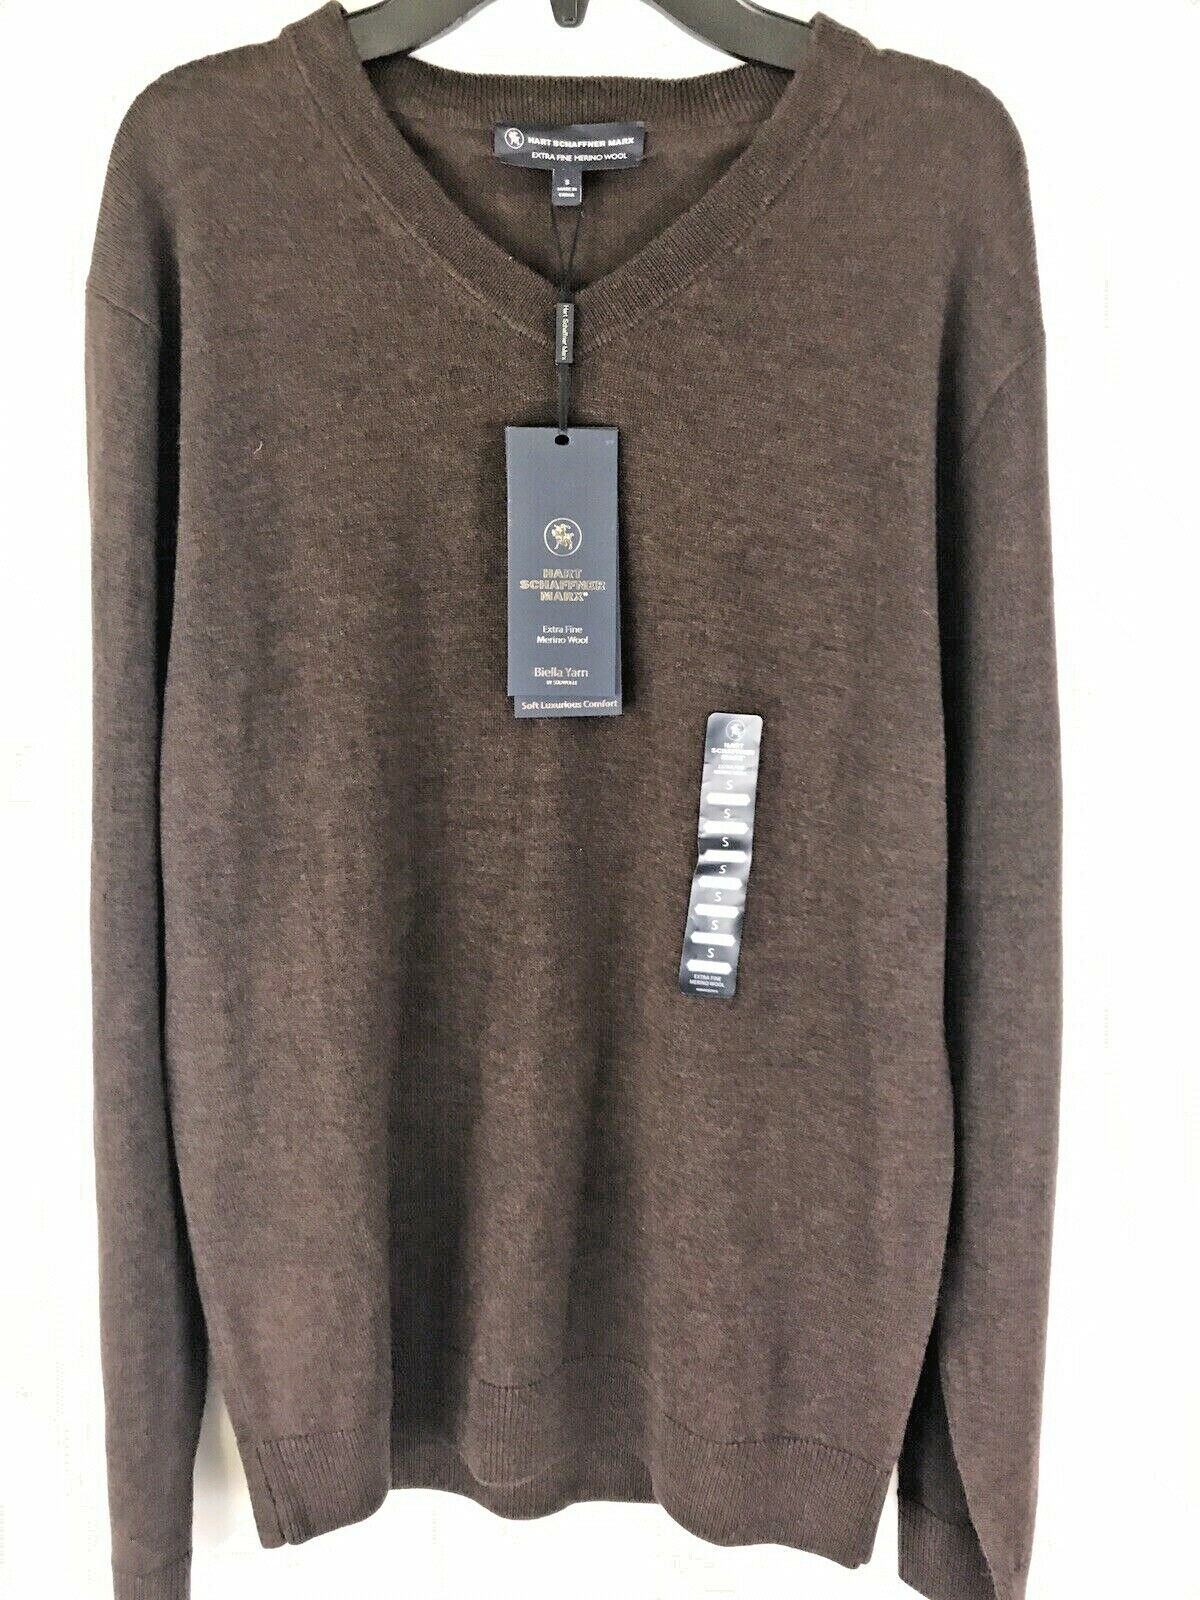 $89 Hart Schaffner Marx V-Neck Sweater Brown Small Biella Yarn Wool Pullover Clothing, Shoes & Accessories